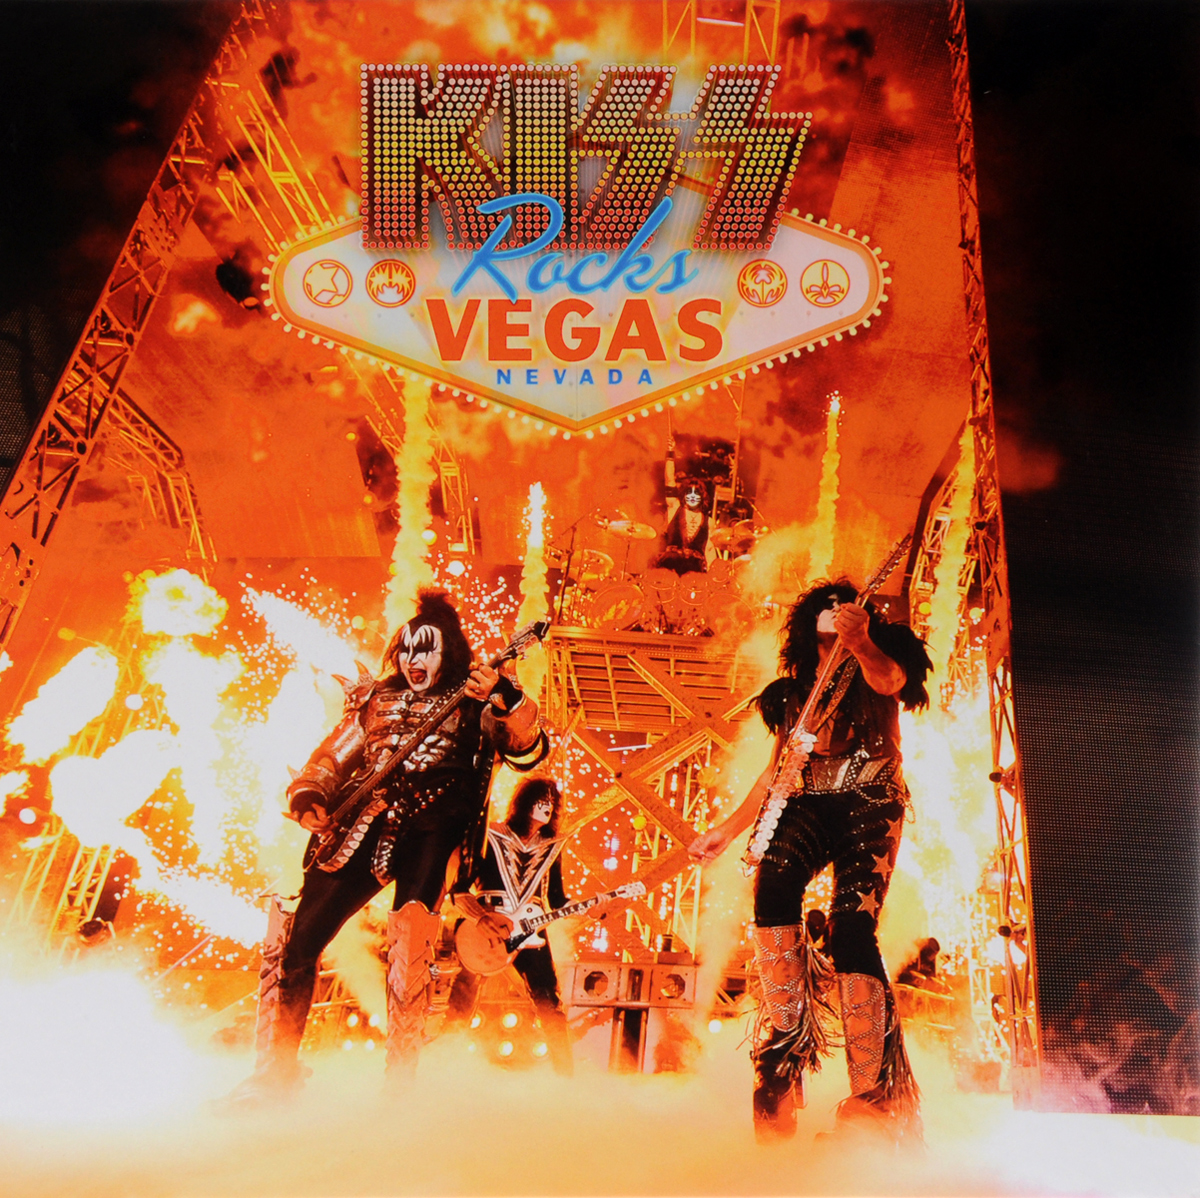 Kiss Kiss. Rocks Vegas (2 CD + DVD + Blu-Ray) врата дракона blu ray